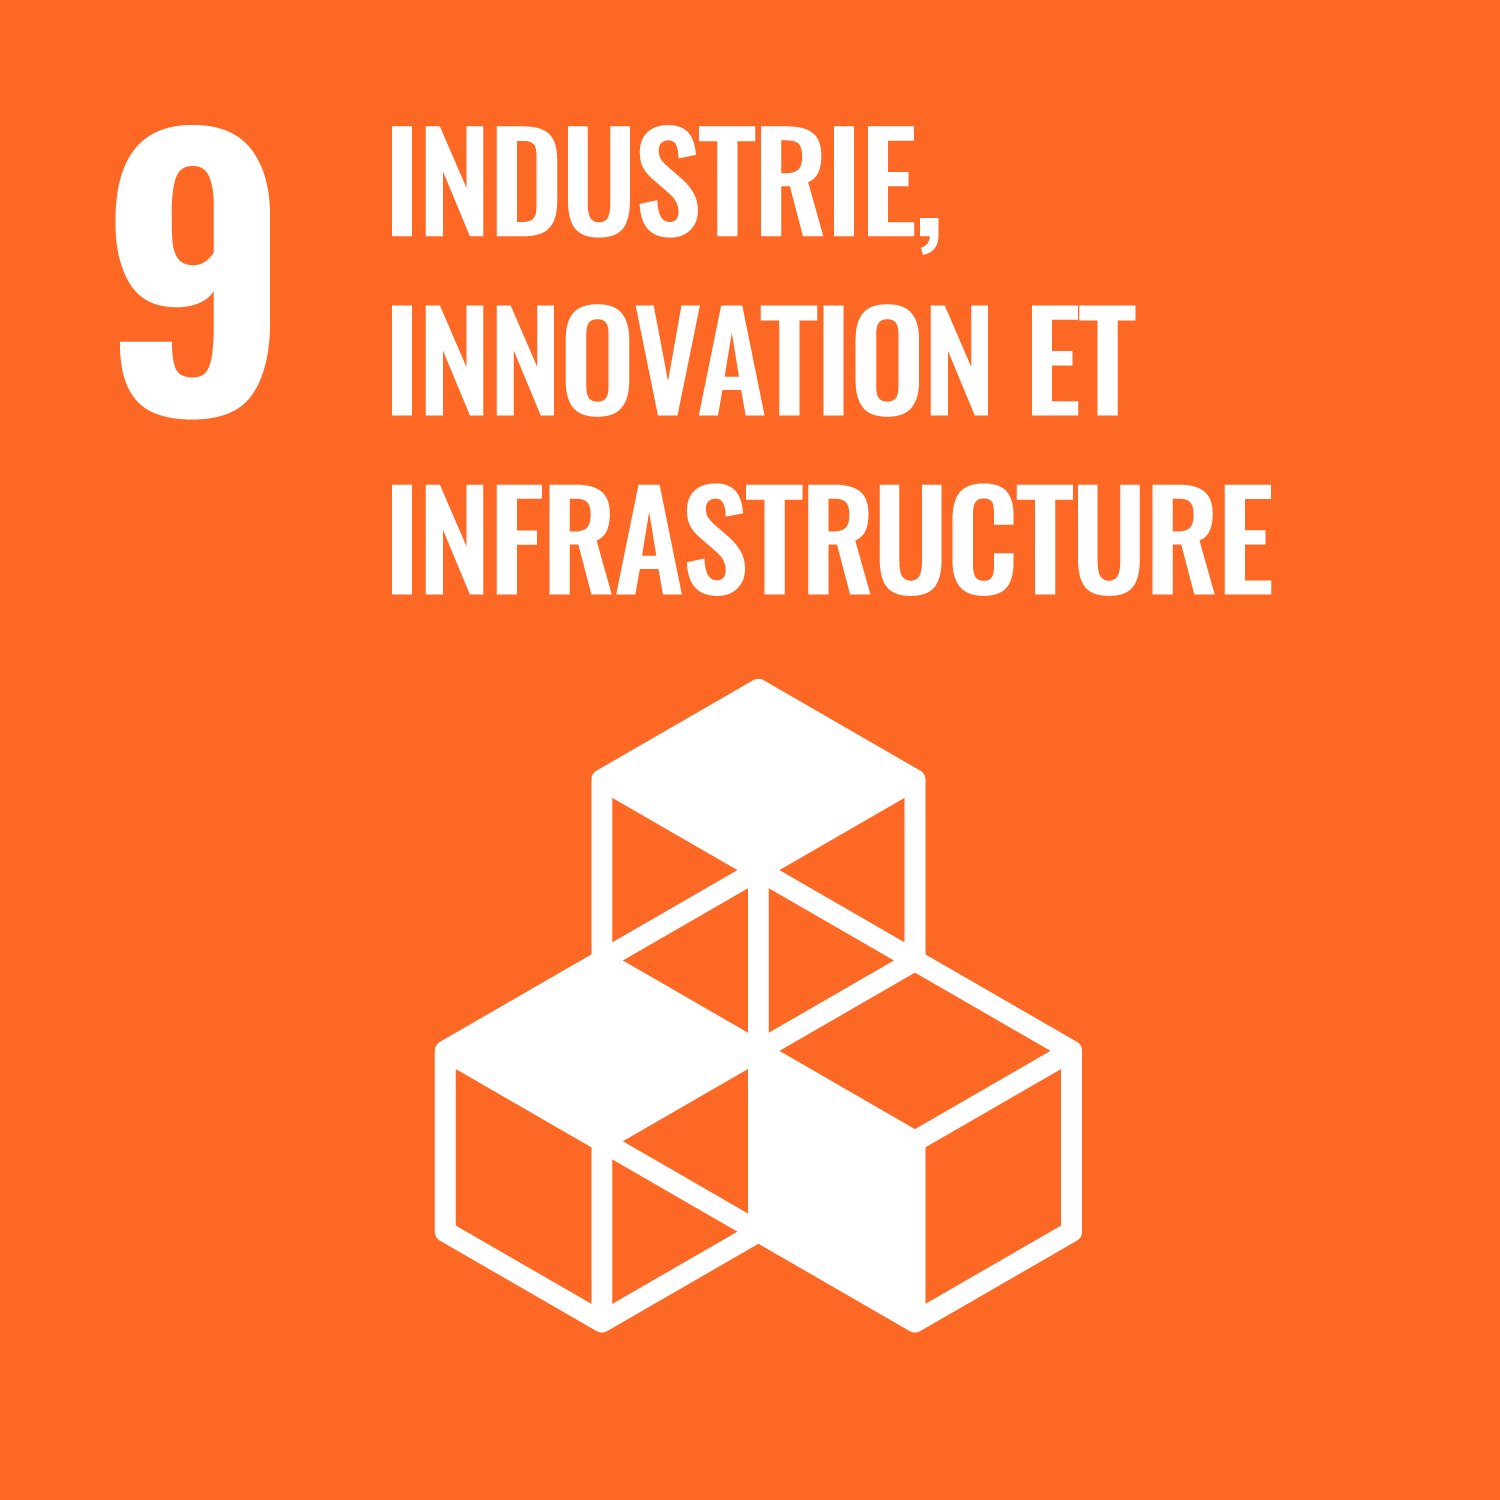 09. industrie, innovation & infrastructure